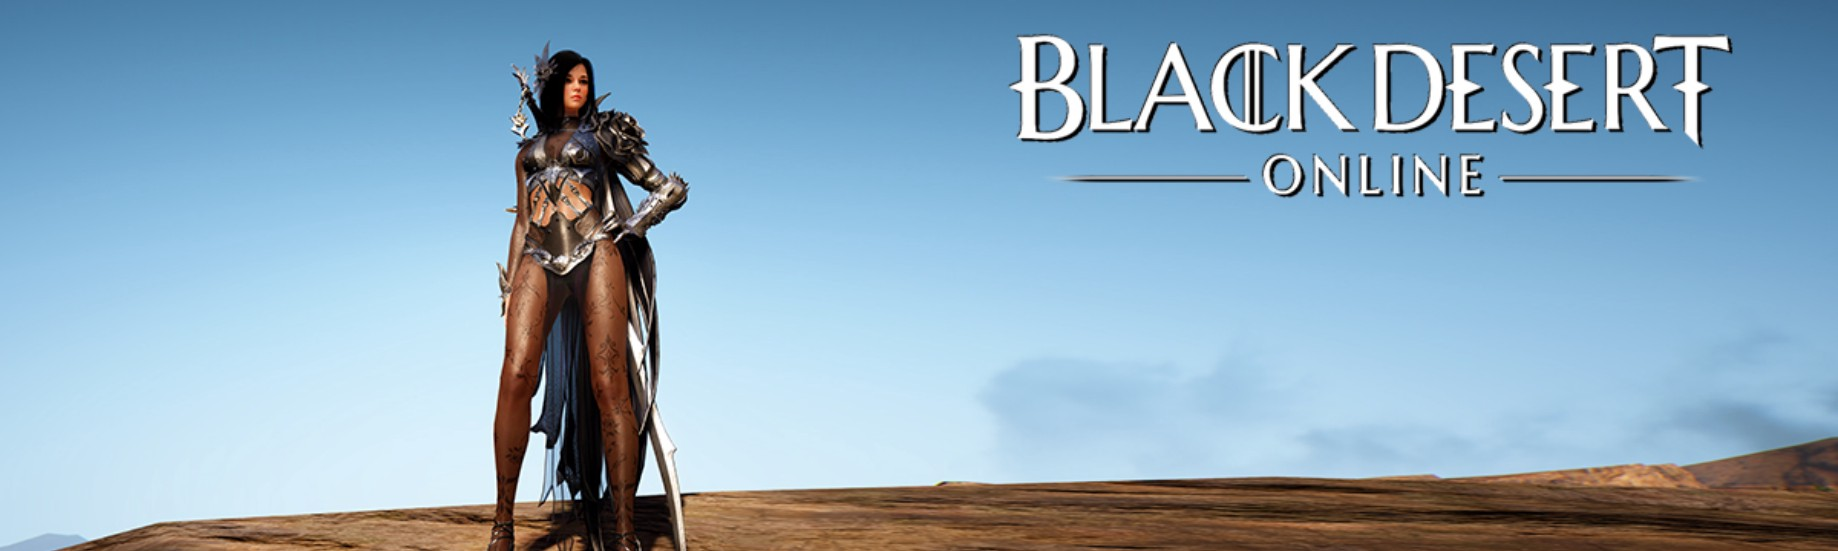 Black Desert Online: Set up your worker economy to make 5 million